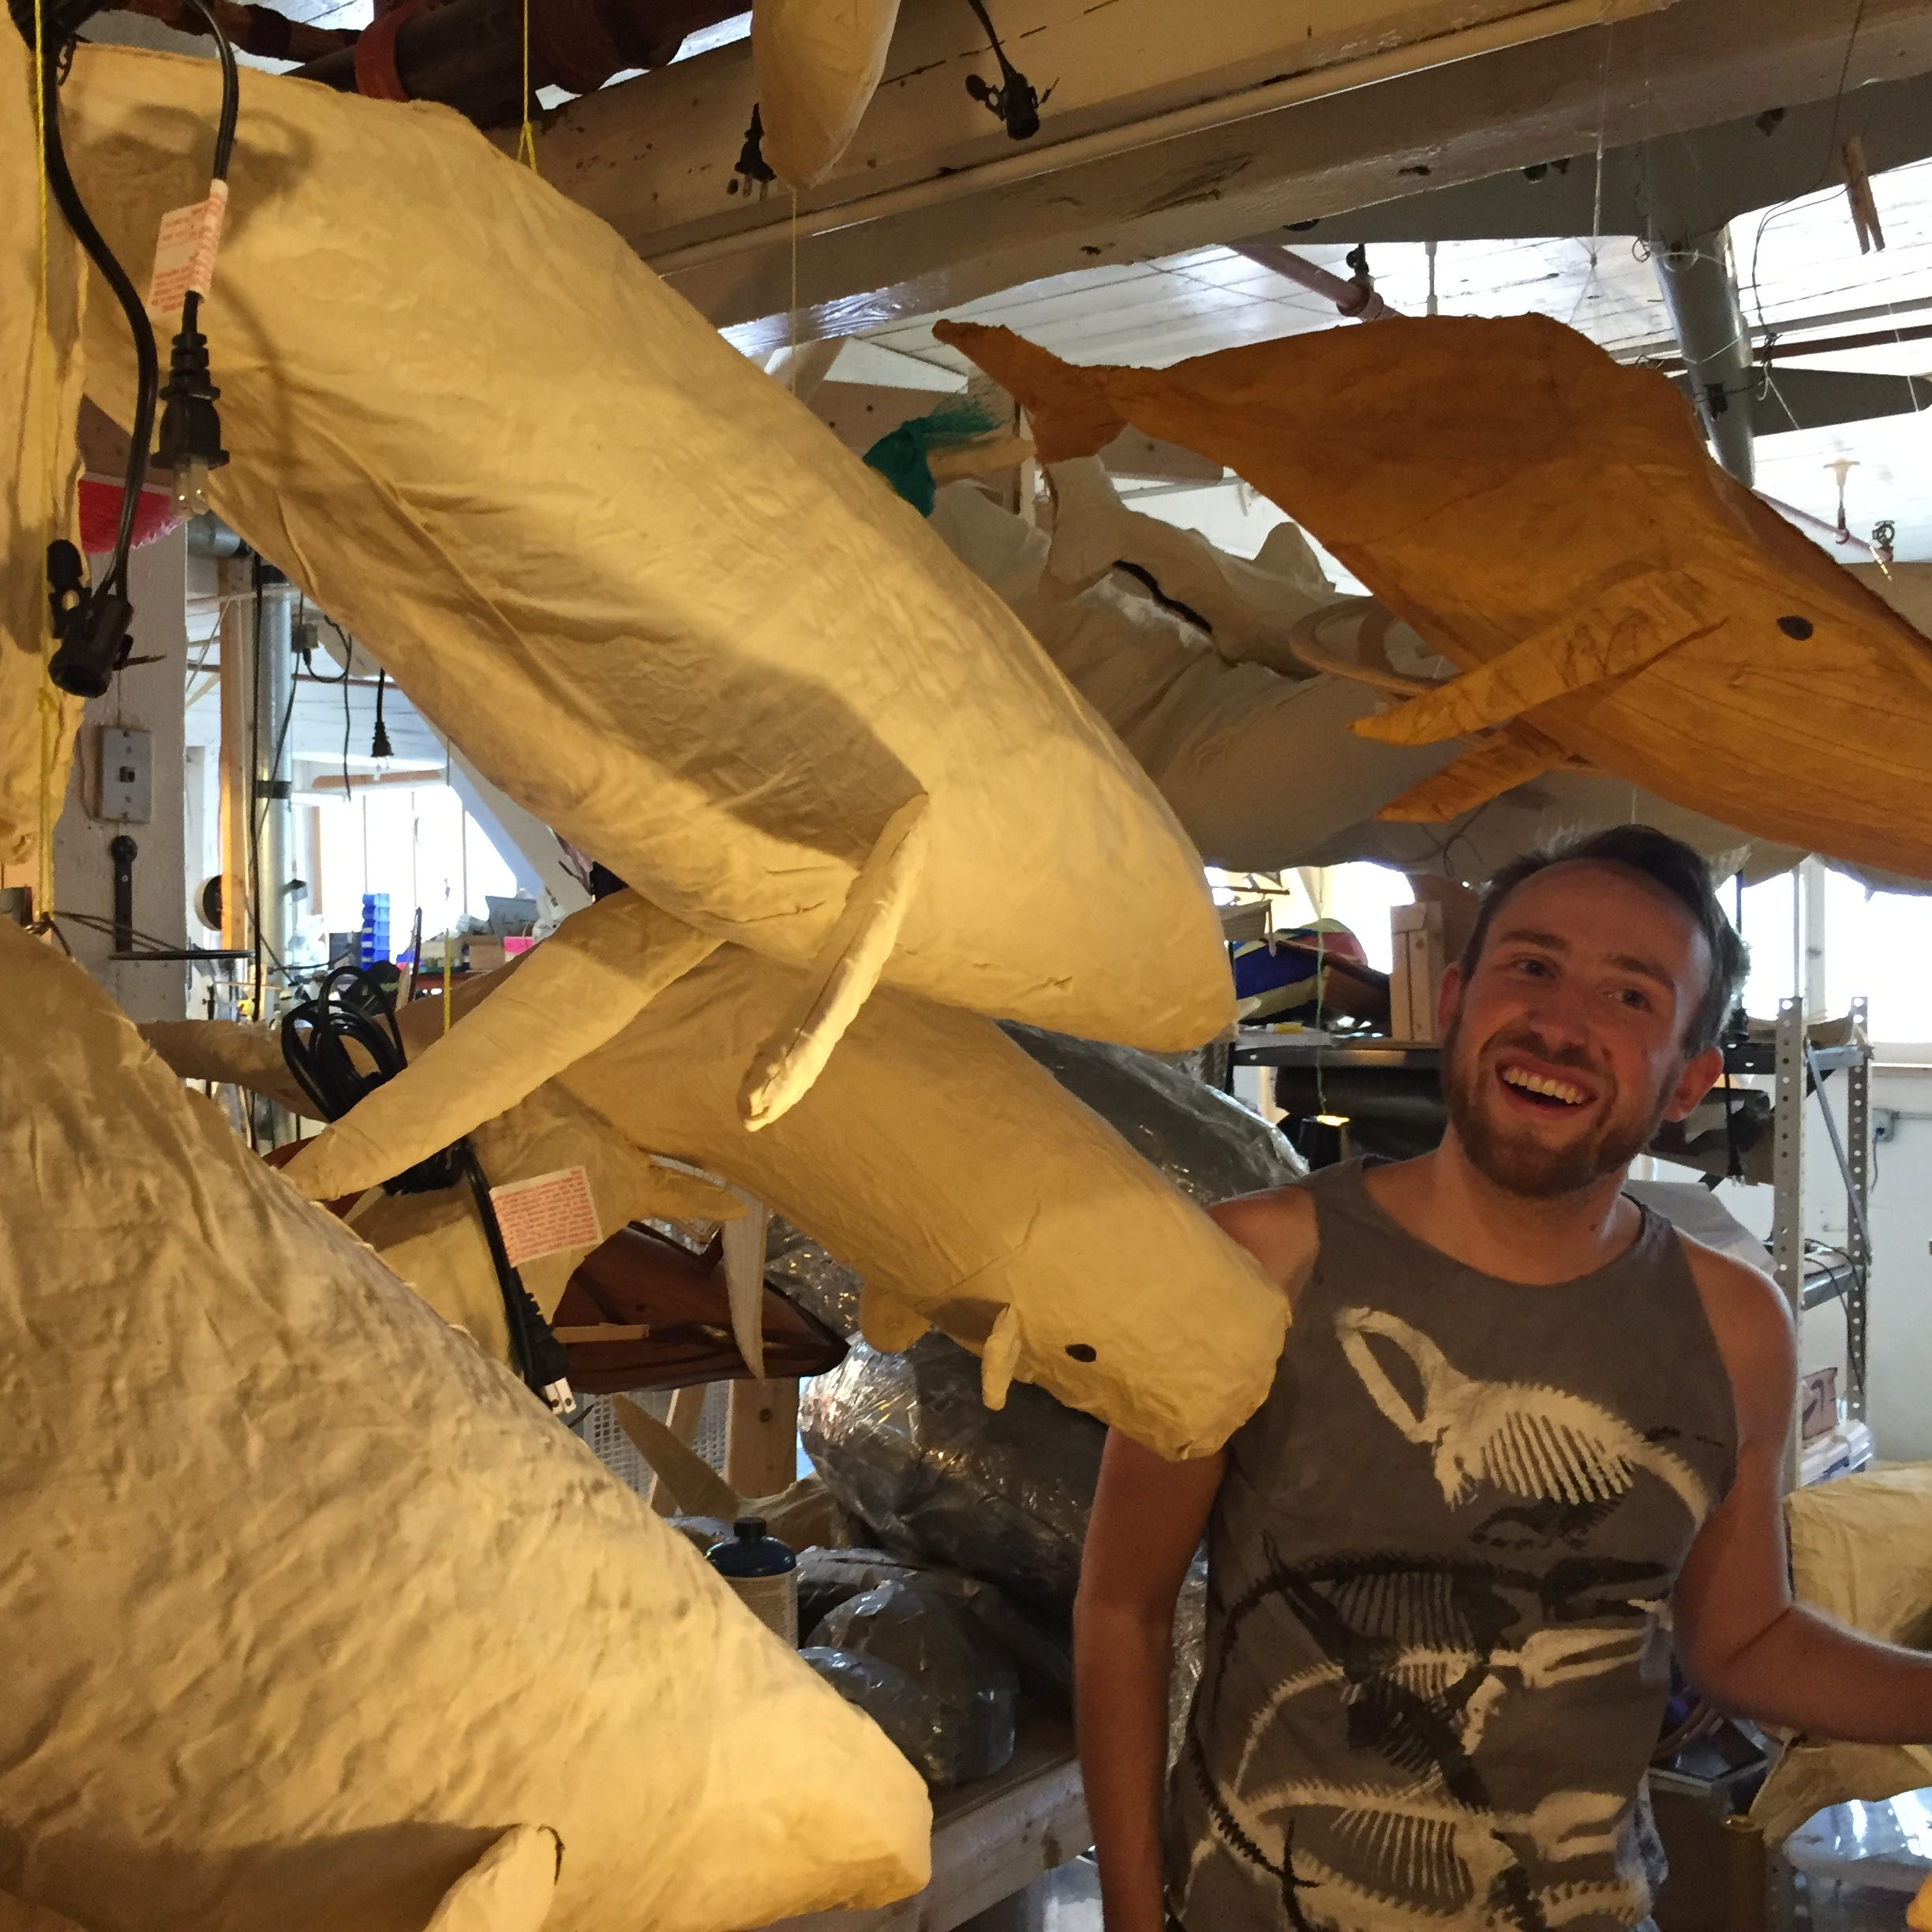 There are 600 artists at the South End Art Hop. Meet one who designs whale lanterns.